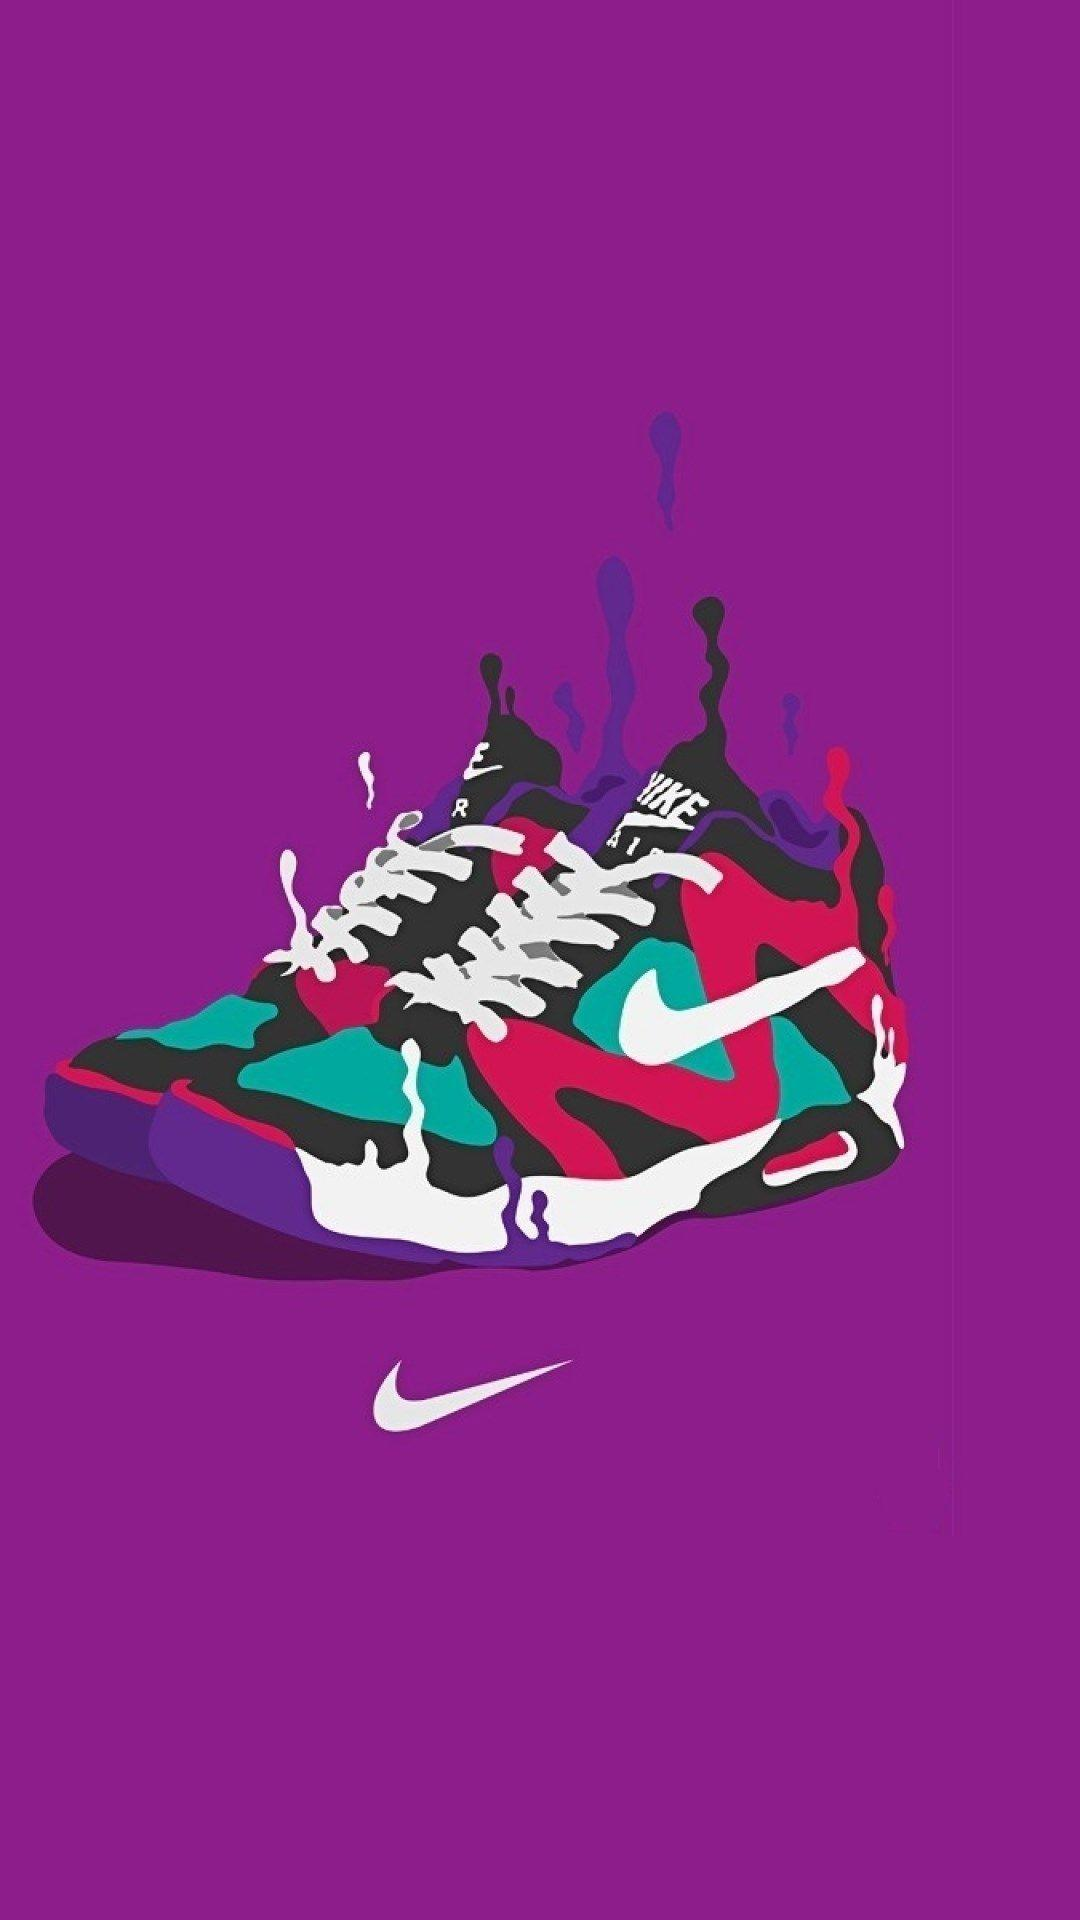 Nike Air Iphone Wallpapers Top Free Nike Air Iphone Backgrounds Wallpaperaccess